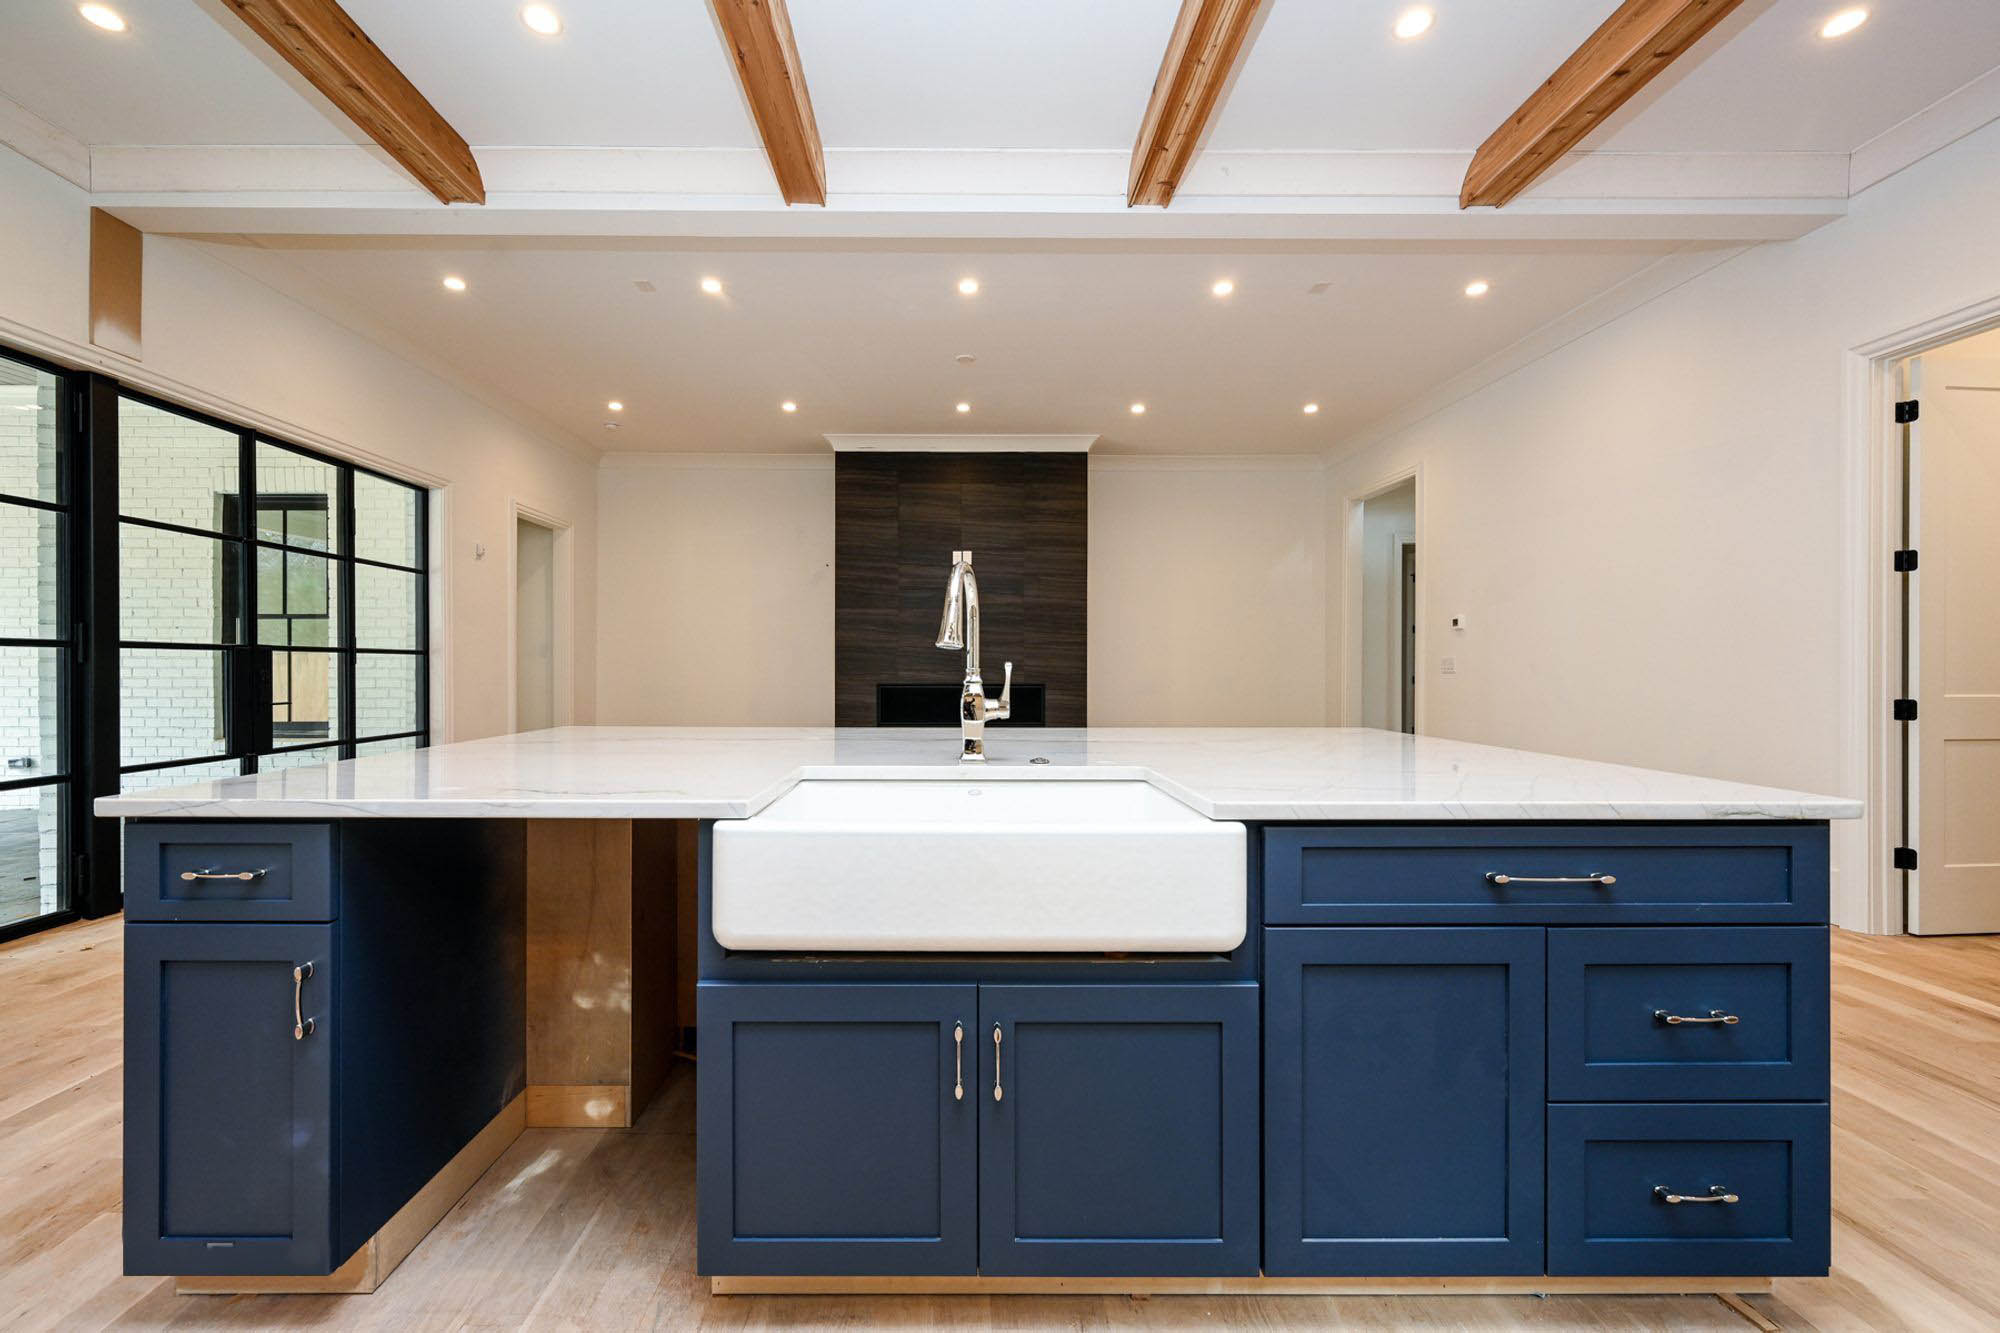 blue shaker style island cabinets with marble counters and white enamel undermount farmhouse sink